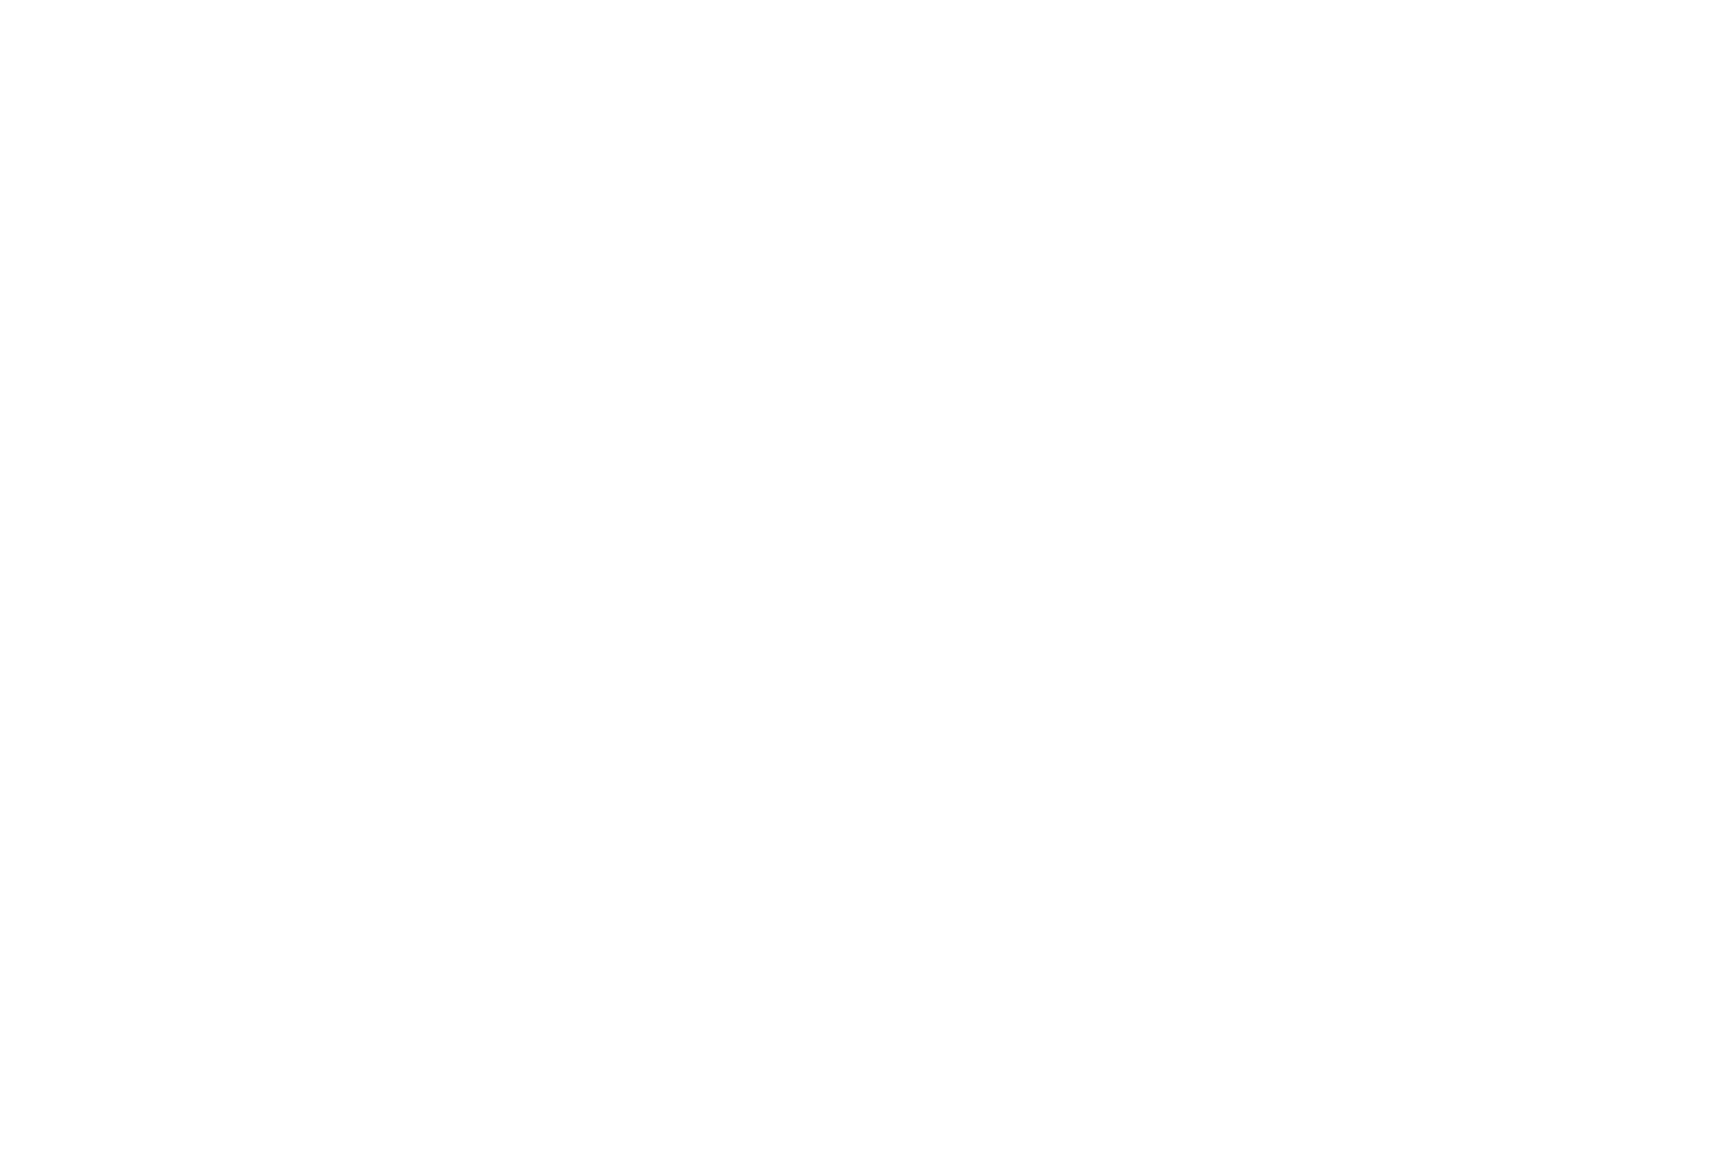 OFFICIAL SELECTION - Middlebury New Filmmakers Festival - 2019 (1).png